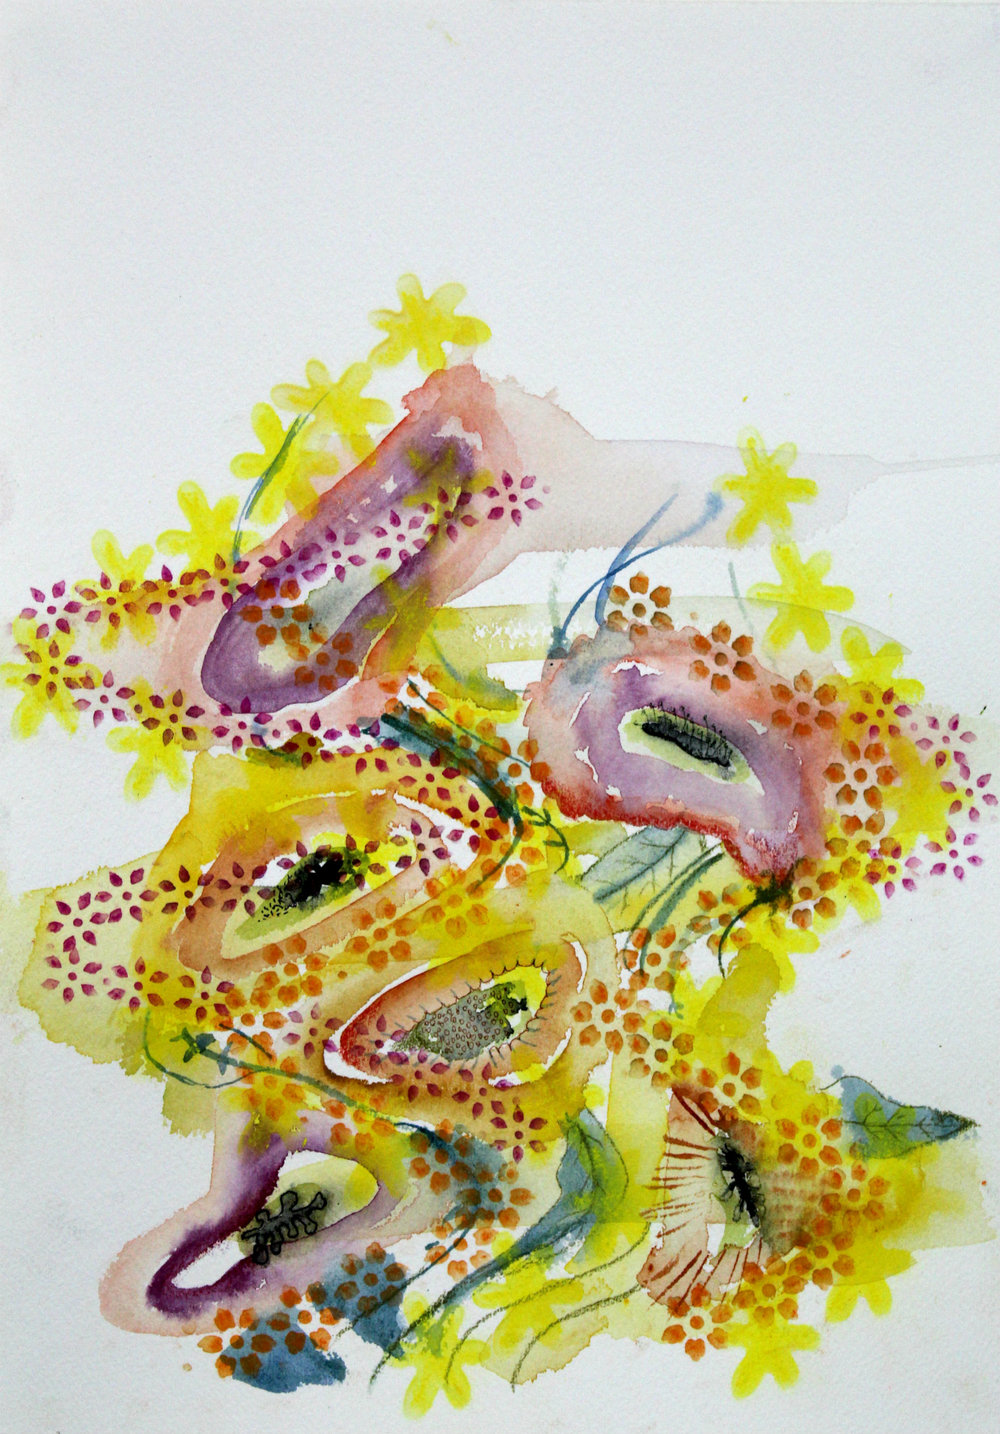 Zwabble, 2019, Watercolor and pastel on paper, 11 X 14 inches, $150